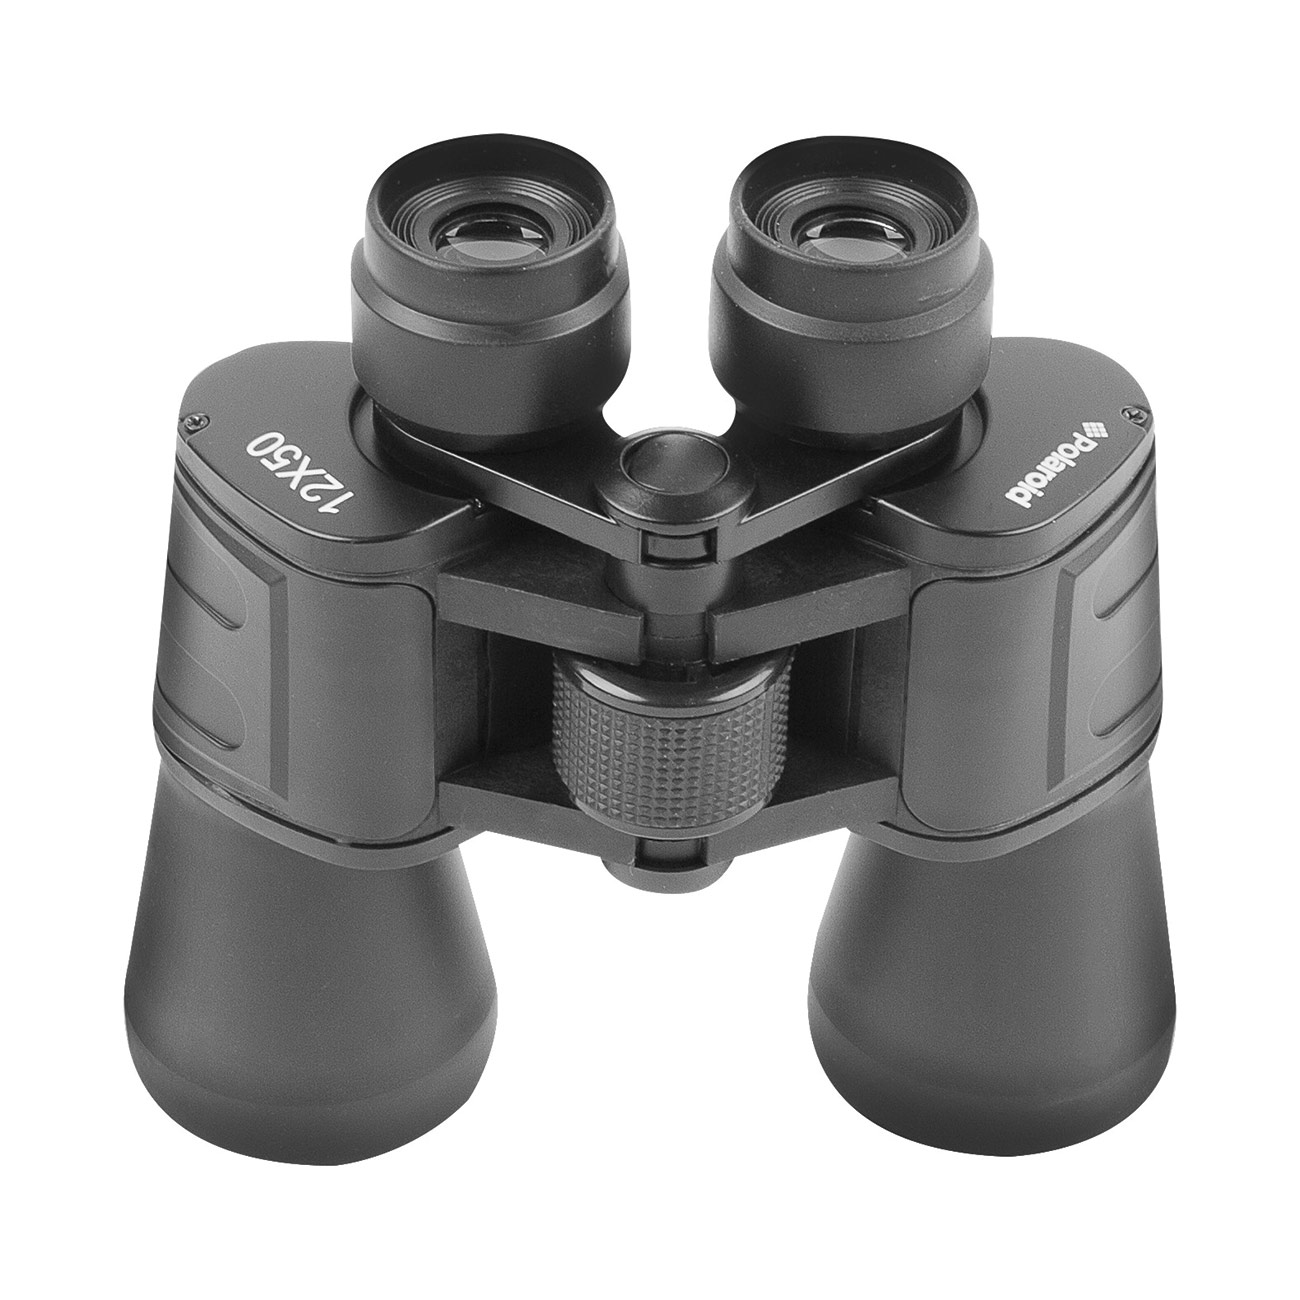 Polaroid 12x50 Sports Binoculars with Case and Shoulder Strap